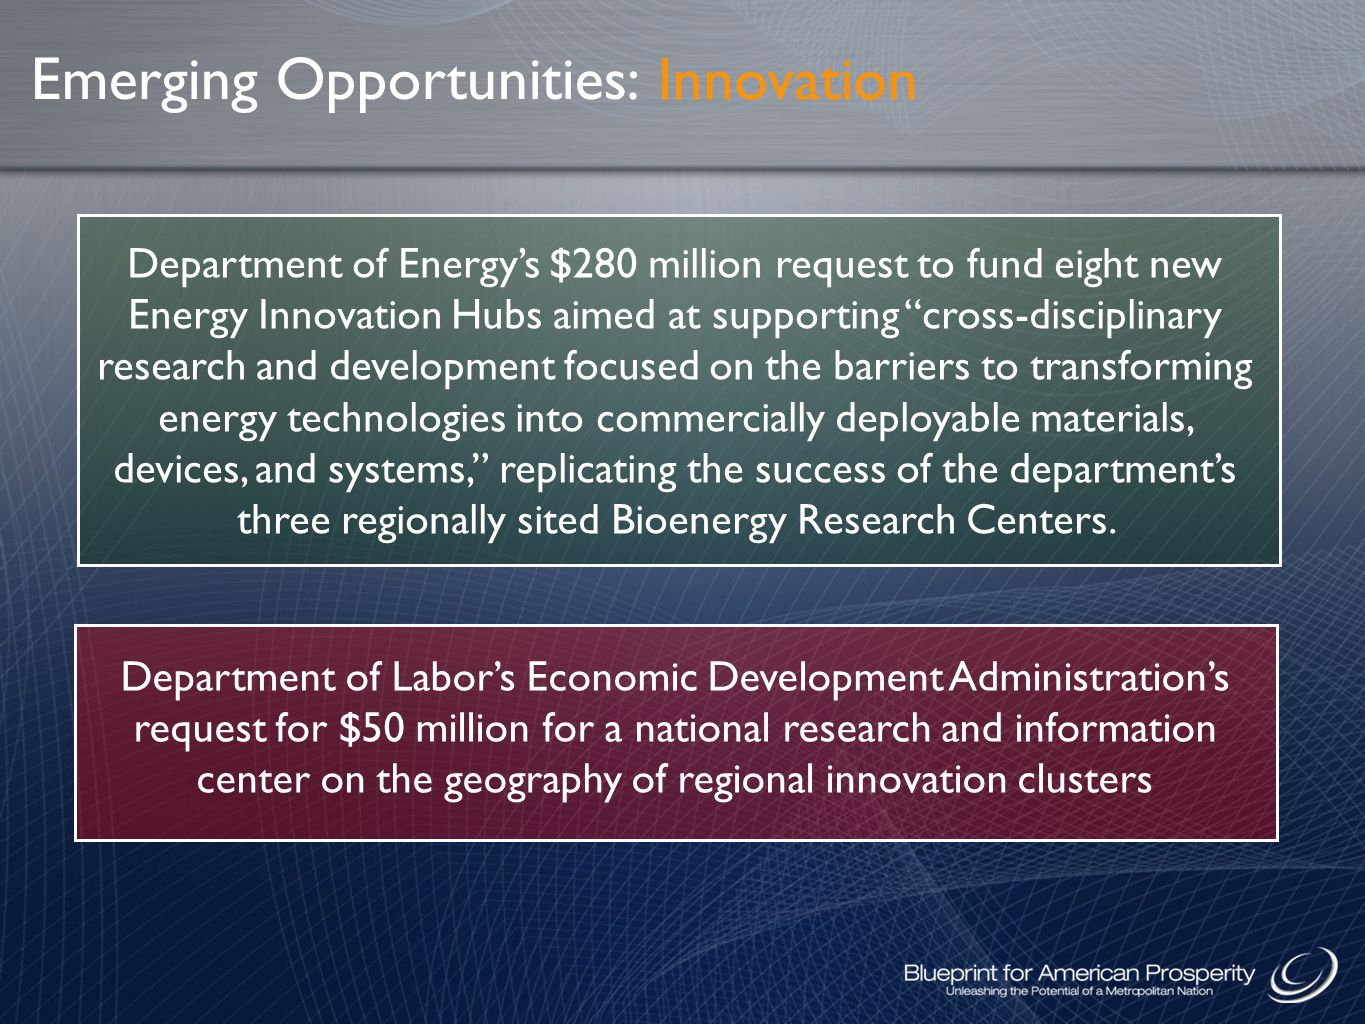 Department of Energy's $280 million request to fund eight new Energy Innovation Hubs aimed at supporting cross-disciplinary research and development focused on the barriers to transforming energy technologies into commercially deployable materials, devices, and systems, replicating the success of the department's three regionally sited Bioenergy Research Centers.